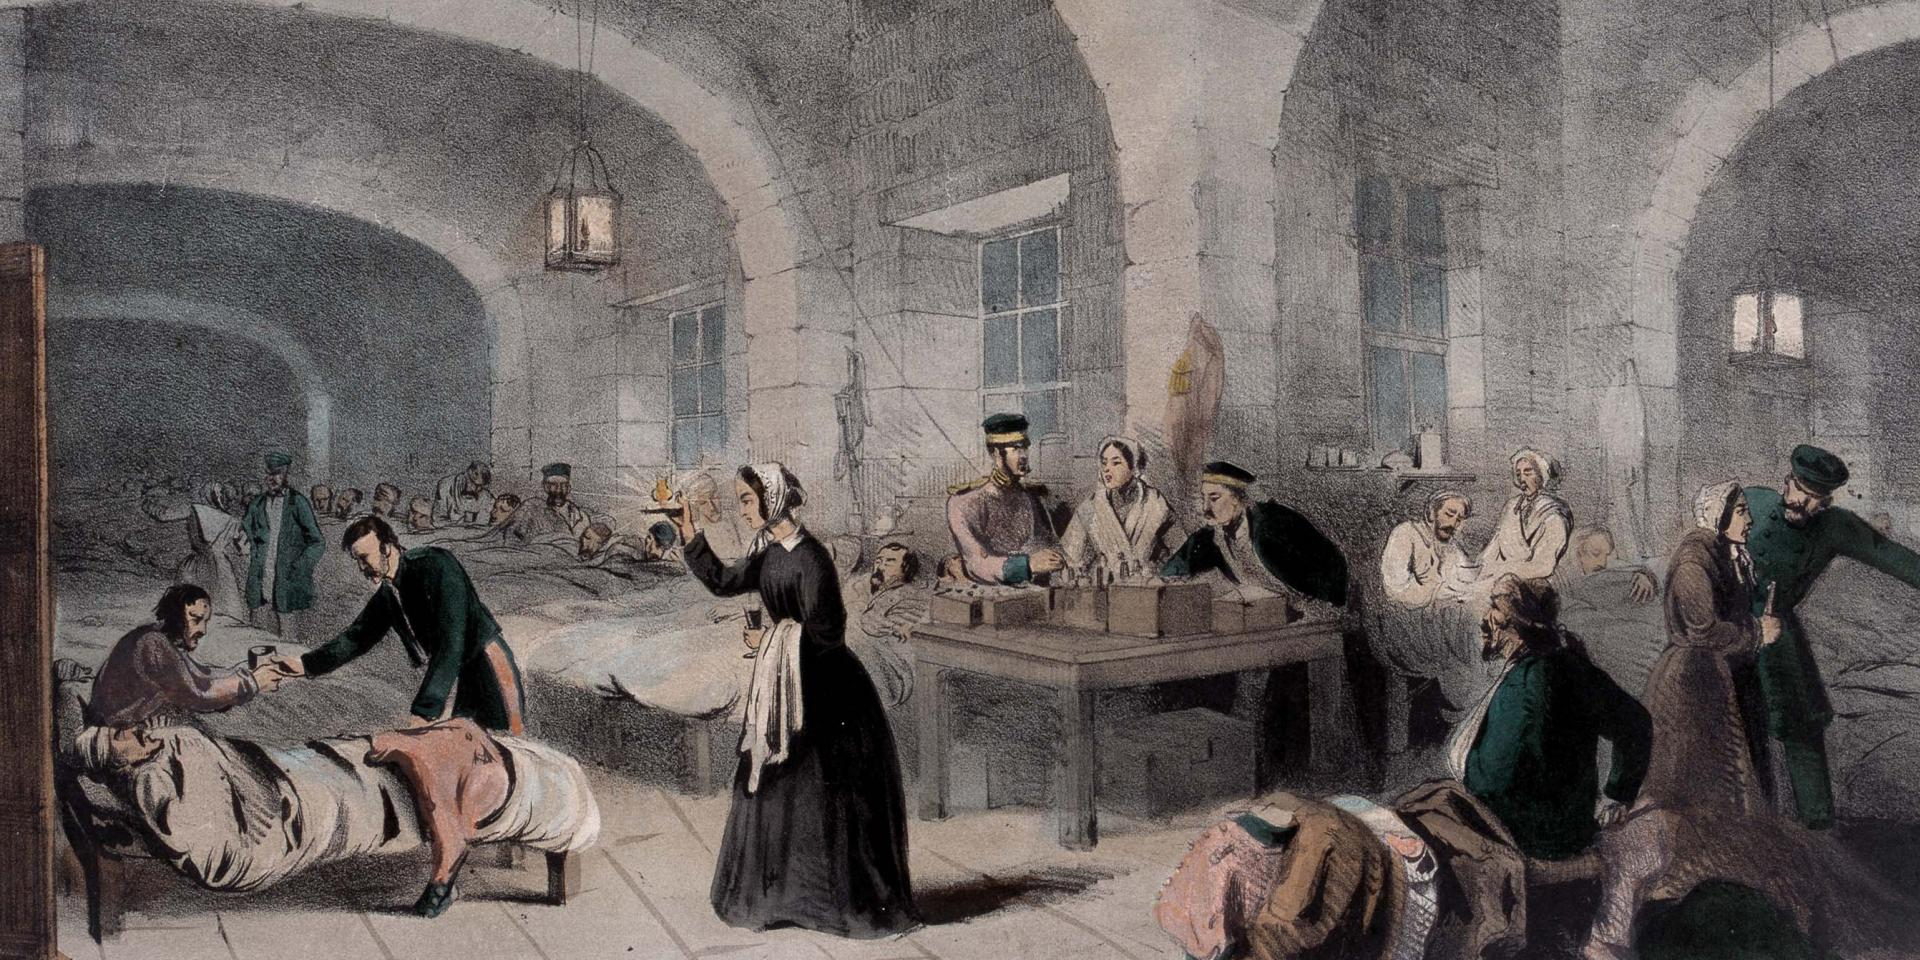 Florence Nightingale in the Military Hospital at Scutari, 1855